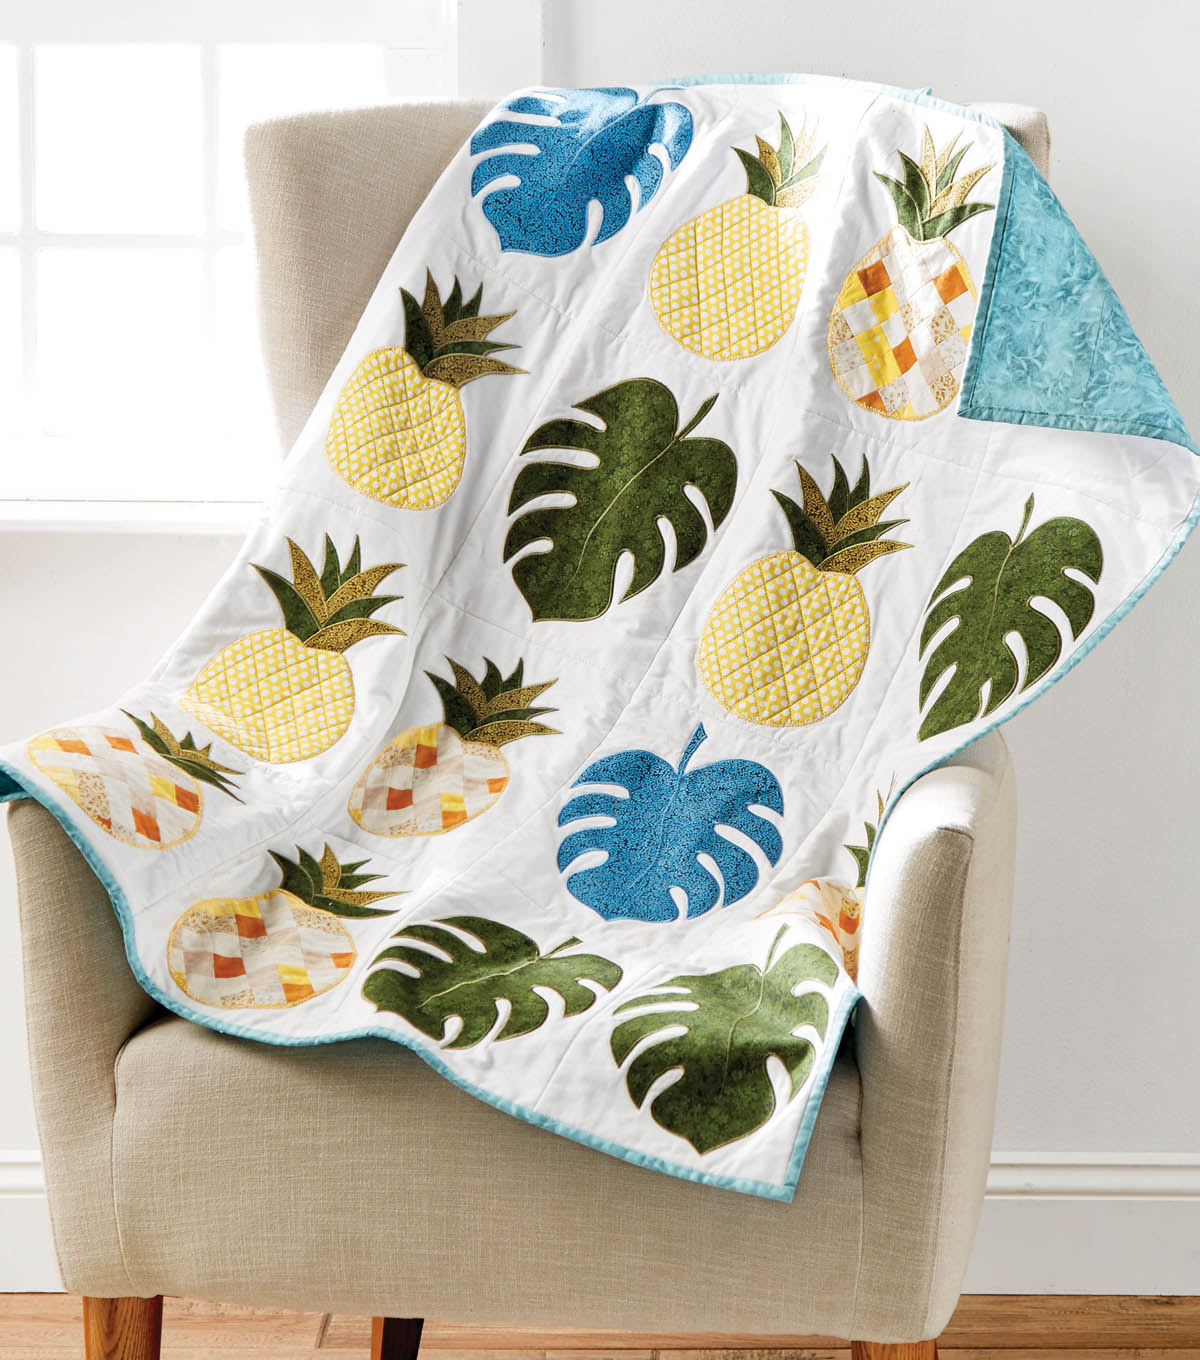 How To Sew A Pineapple Quilt Wall Hanging